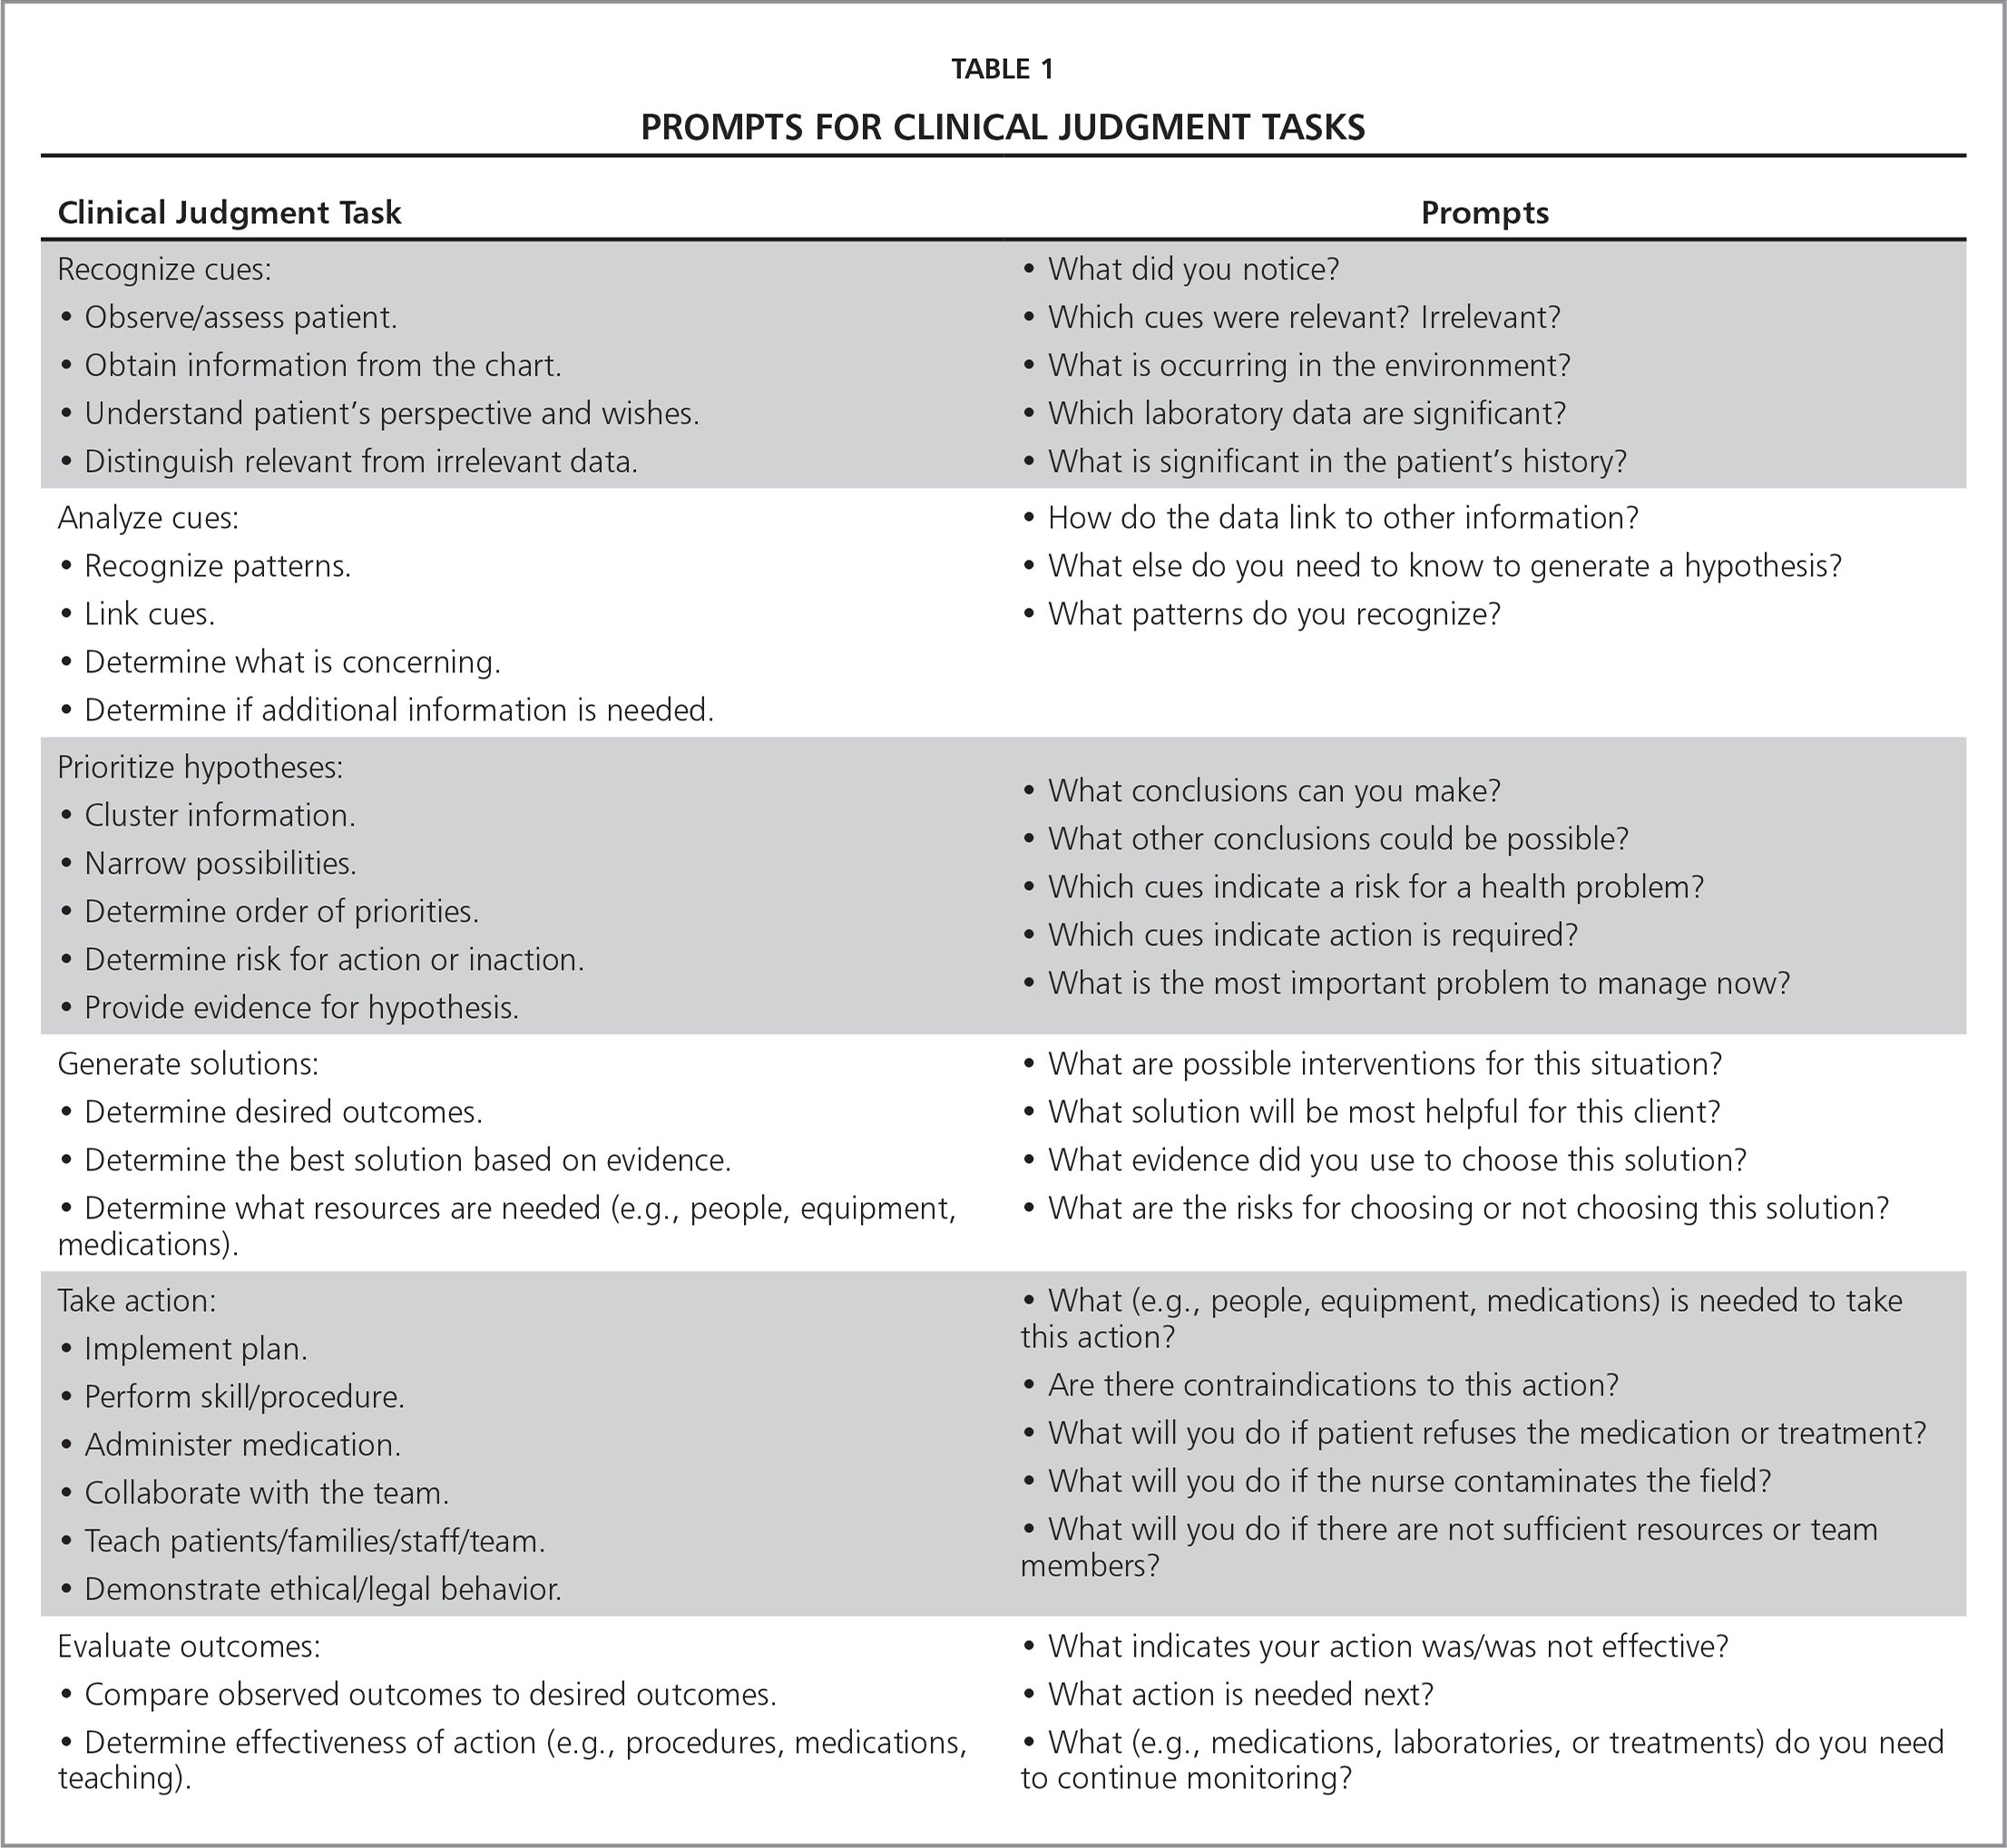 Prompts for Clinical Judgment Tasks